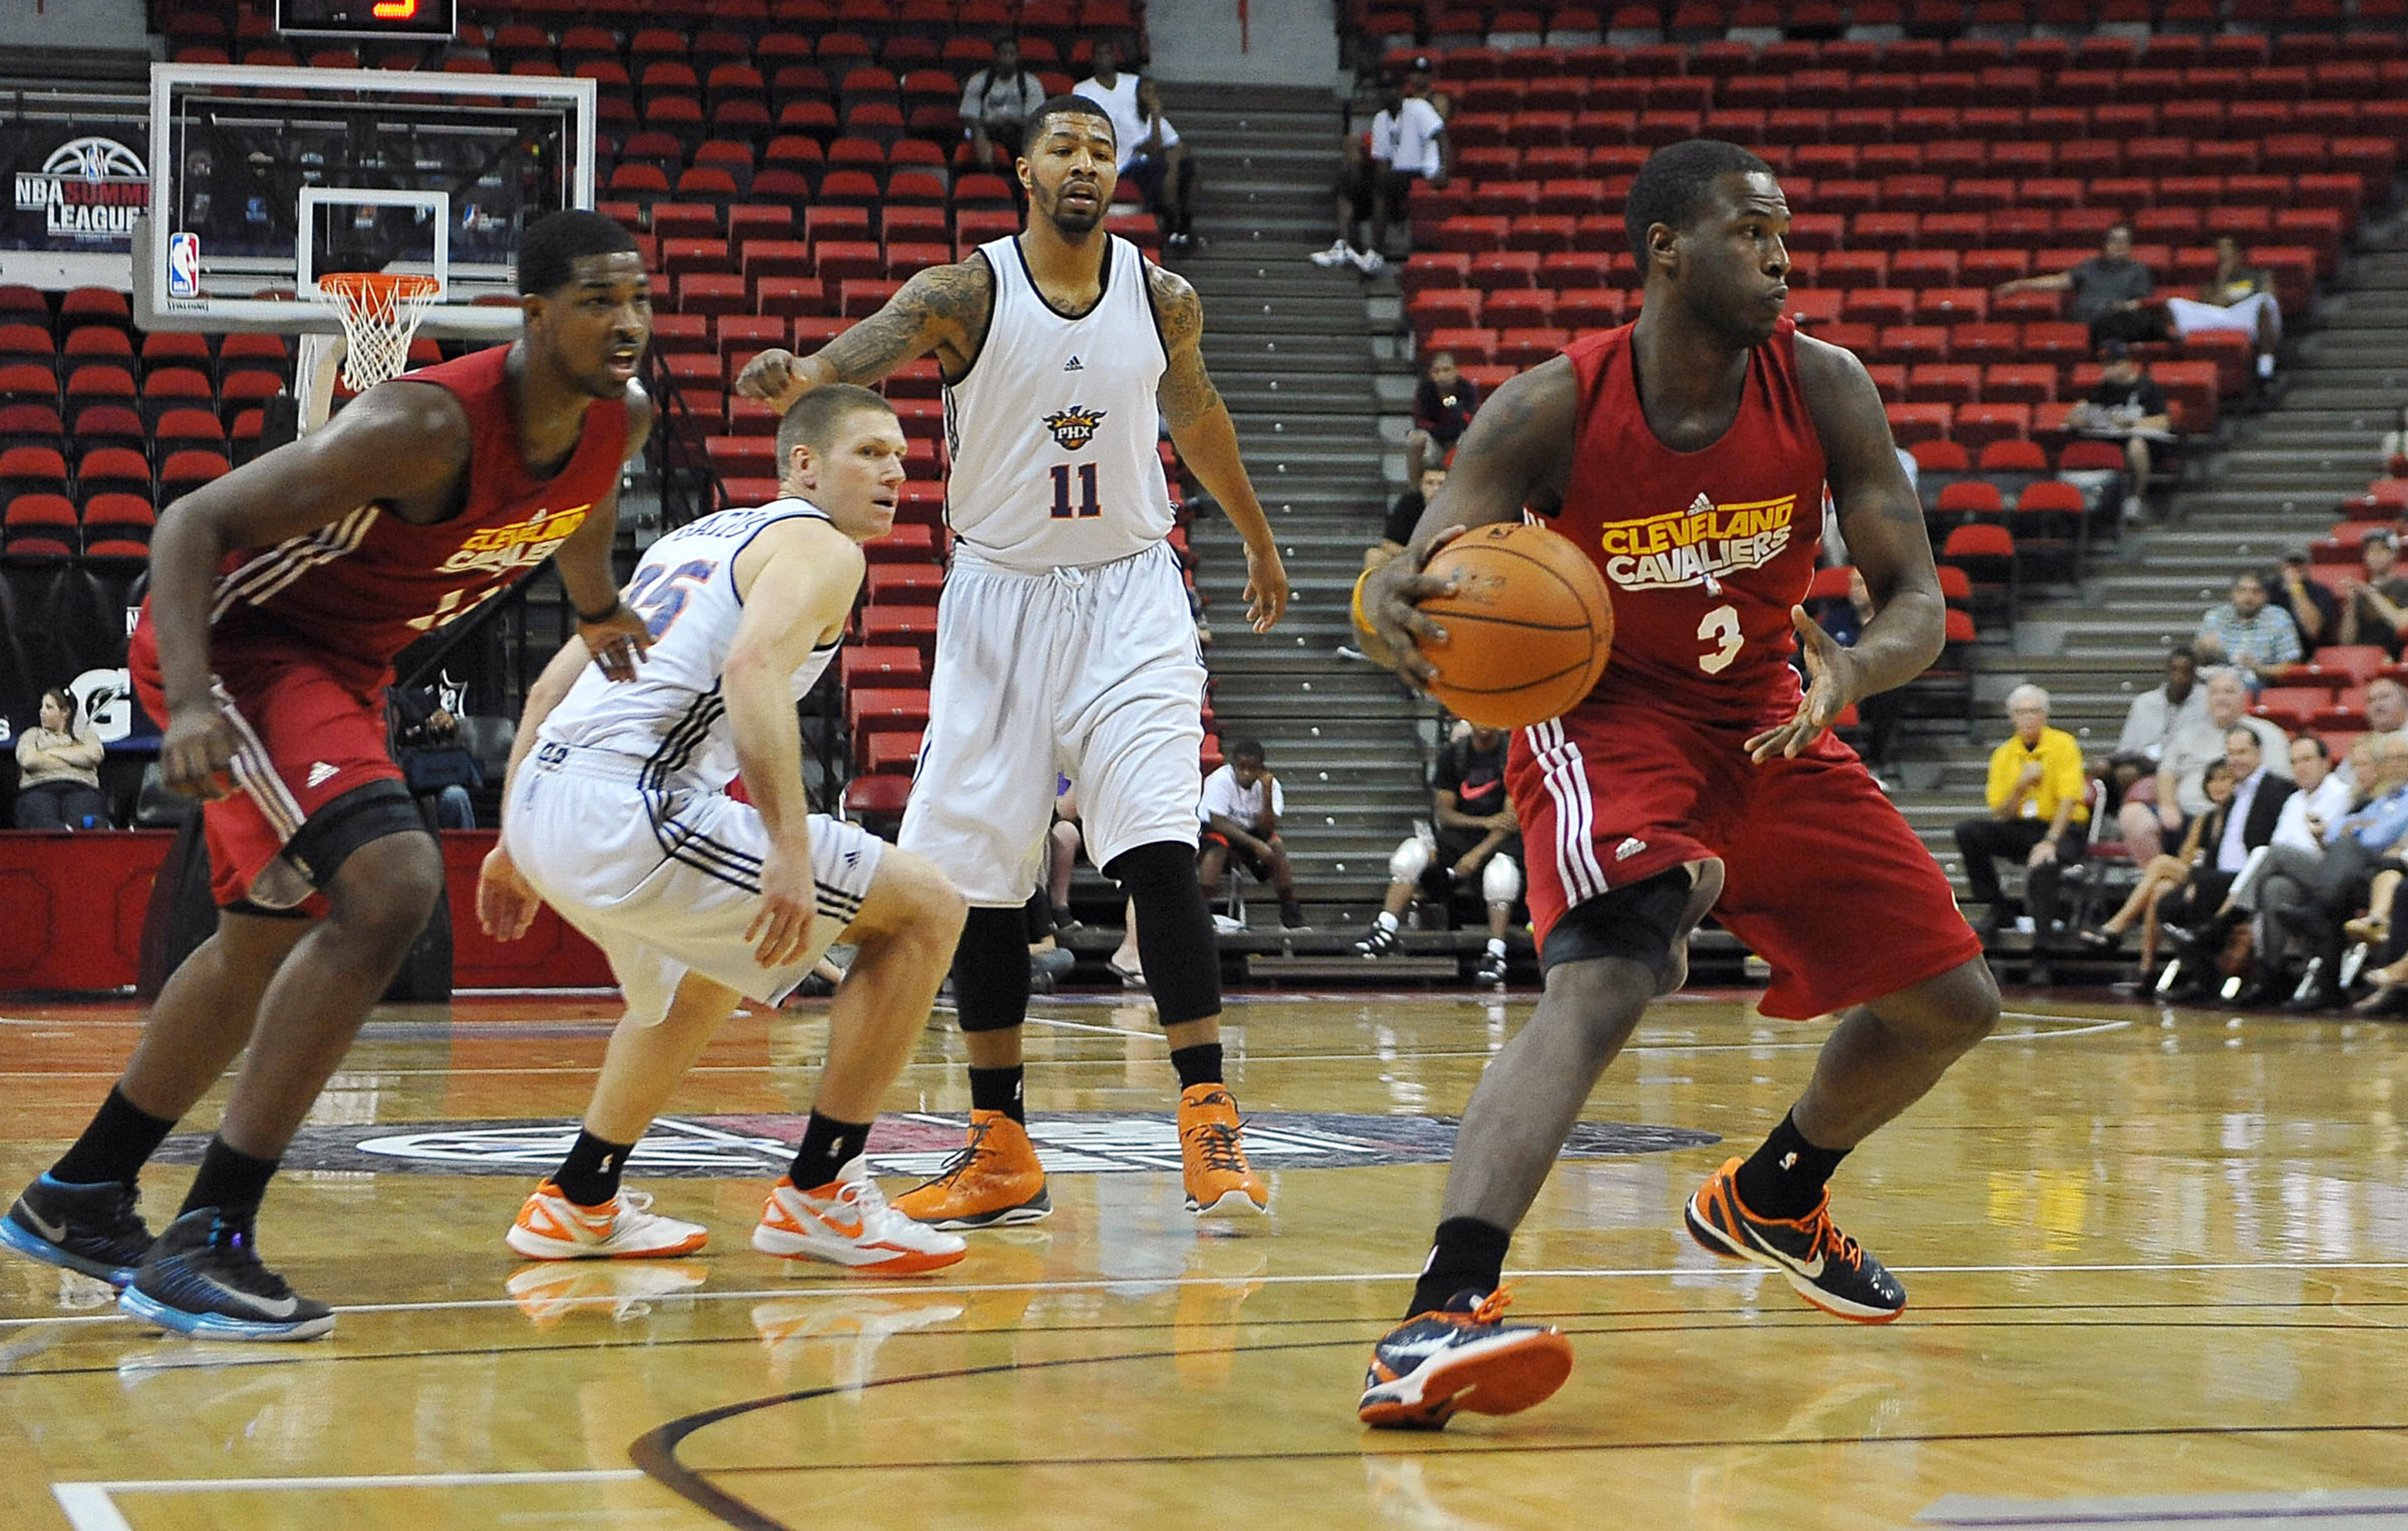 July 17, 2012; Las Vegas, NV, USA;   Cleveland Cavaliers guard Dion Waiters (3) controls the ball during the game against the Phoenix Suns at the Thomas and Mack Center. Mandatory Credit: Jayne Kamin-Oncea-US PRESSWIRE